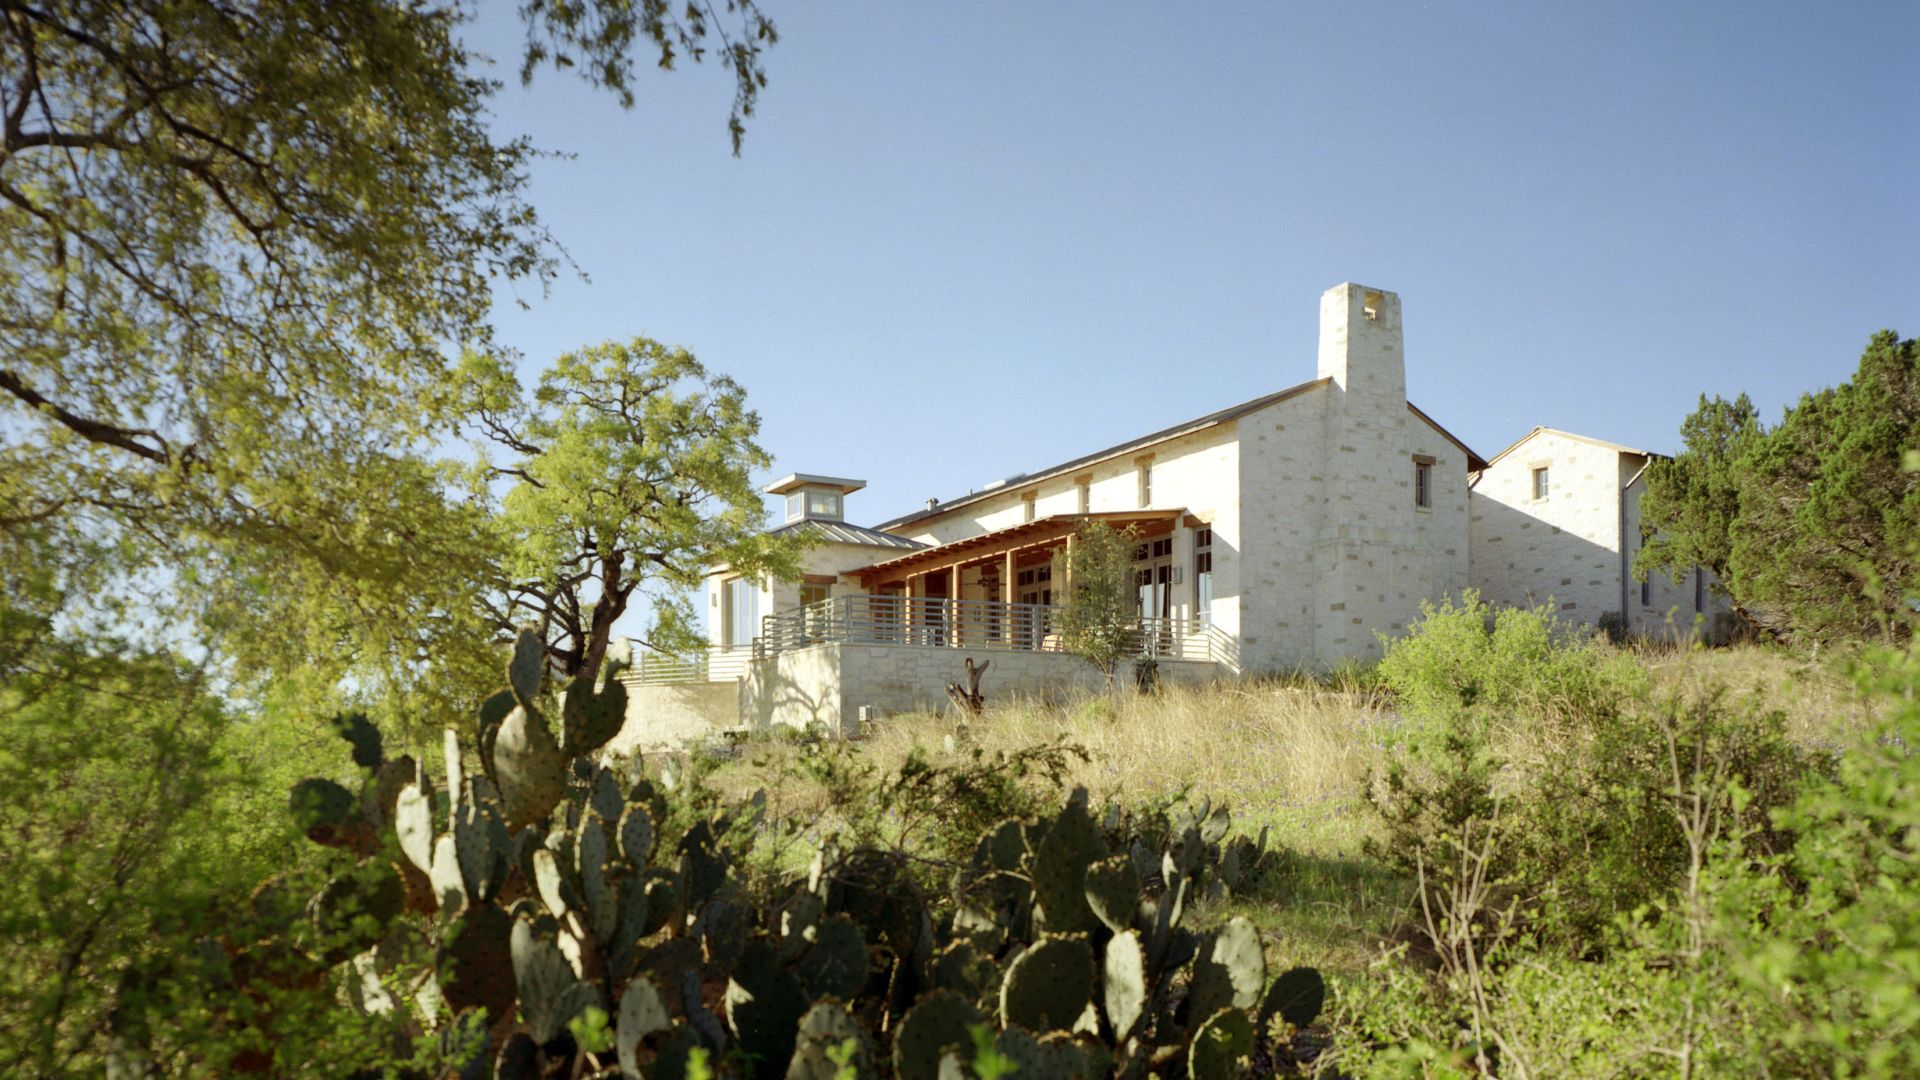 Lakeside Retreat, Spicewood, TX  Connectivity to Nature | Contextual | Native Materials | Low-Maintenance